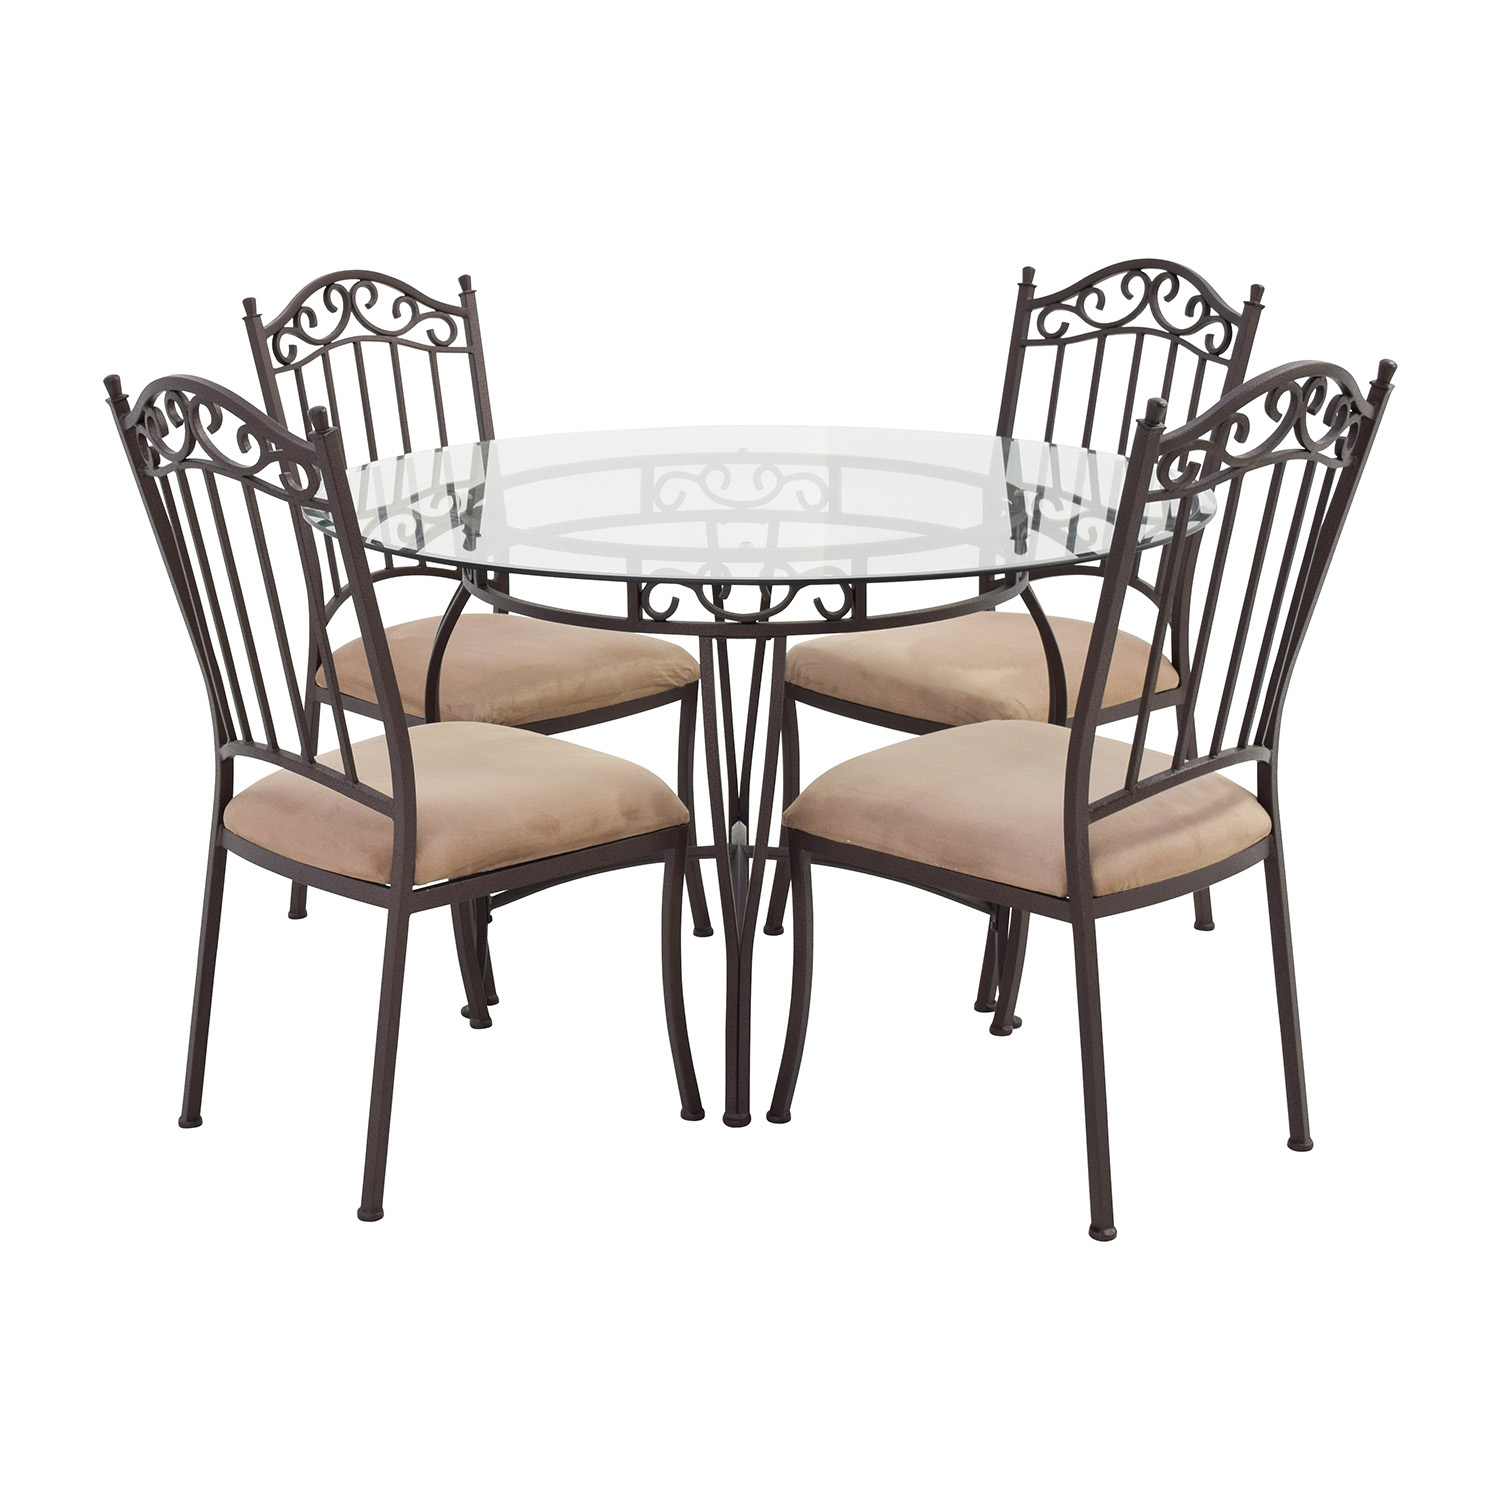 72 off wrought iron round glass table and chairs tables for Iron furniture